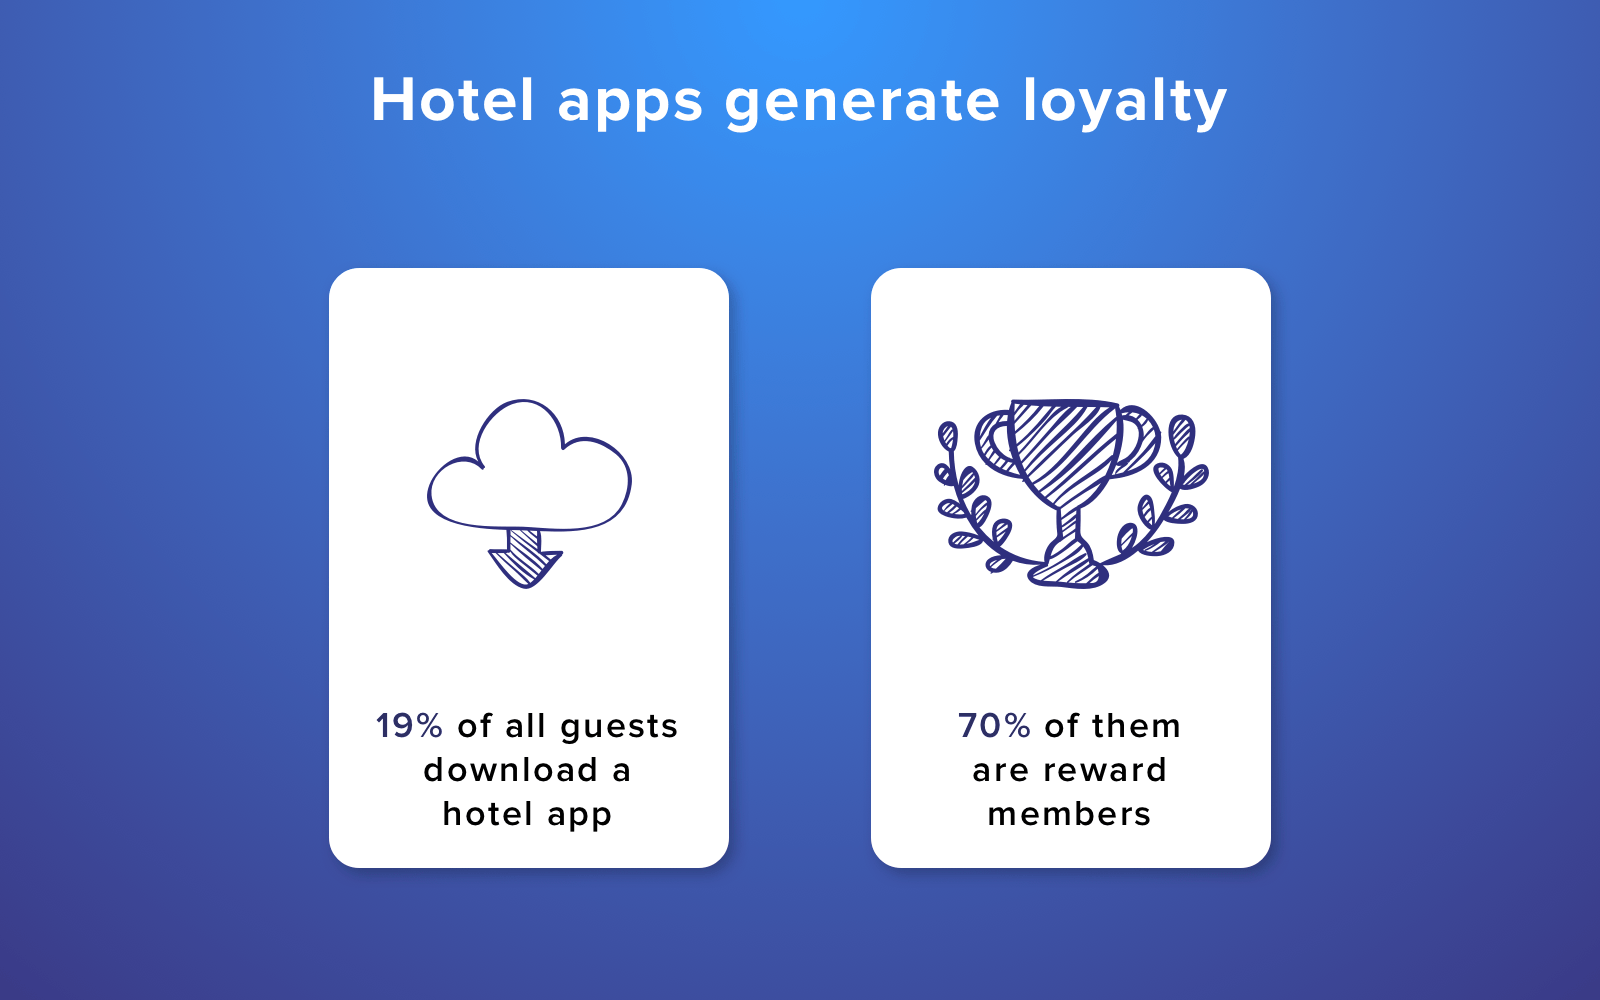 Hotel applications generate loyalty